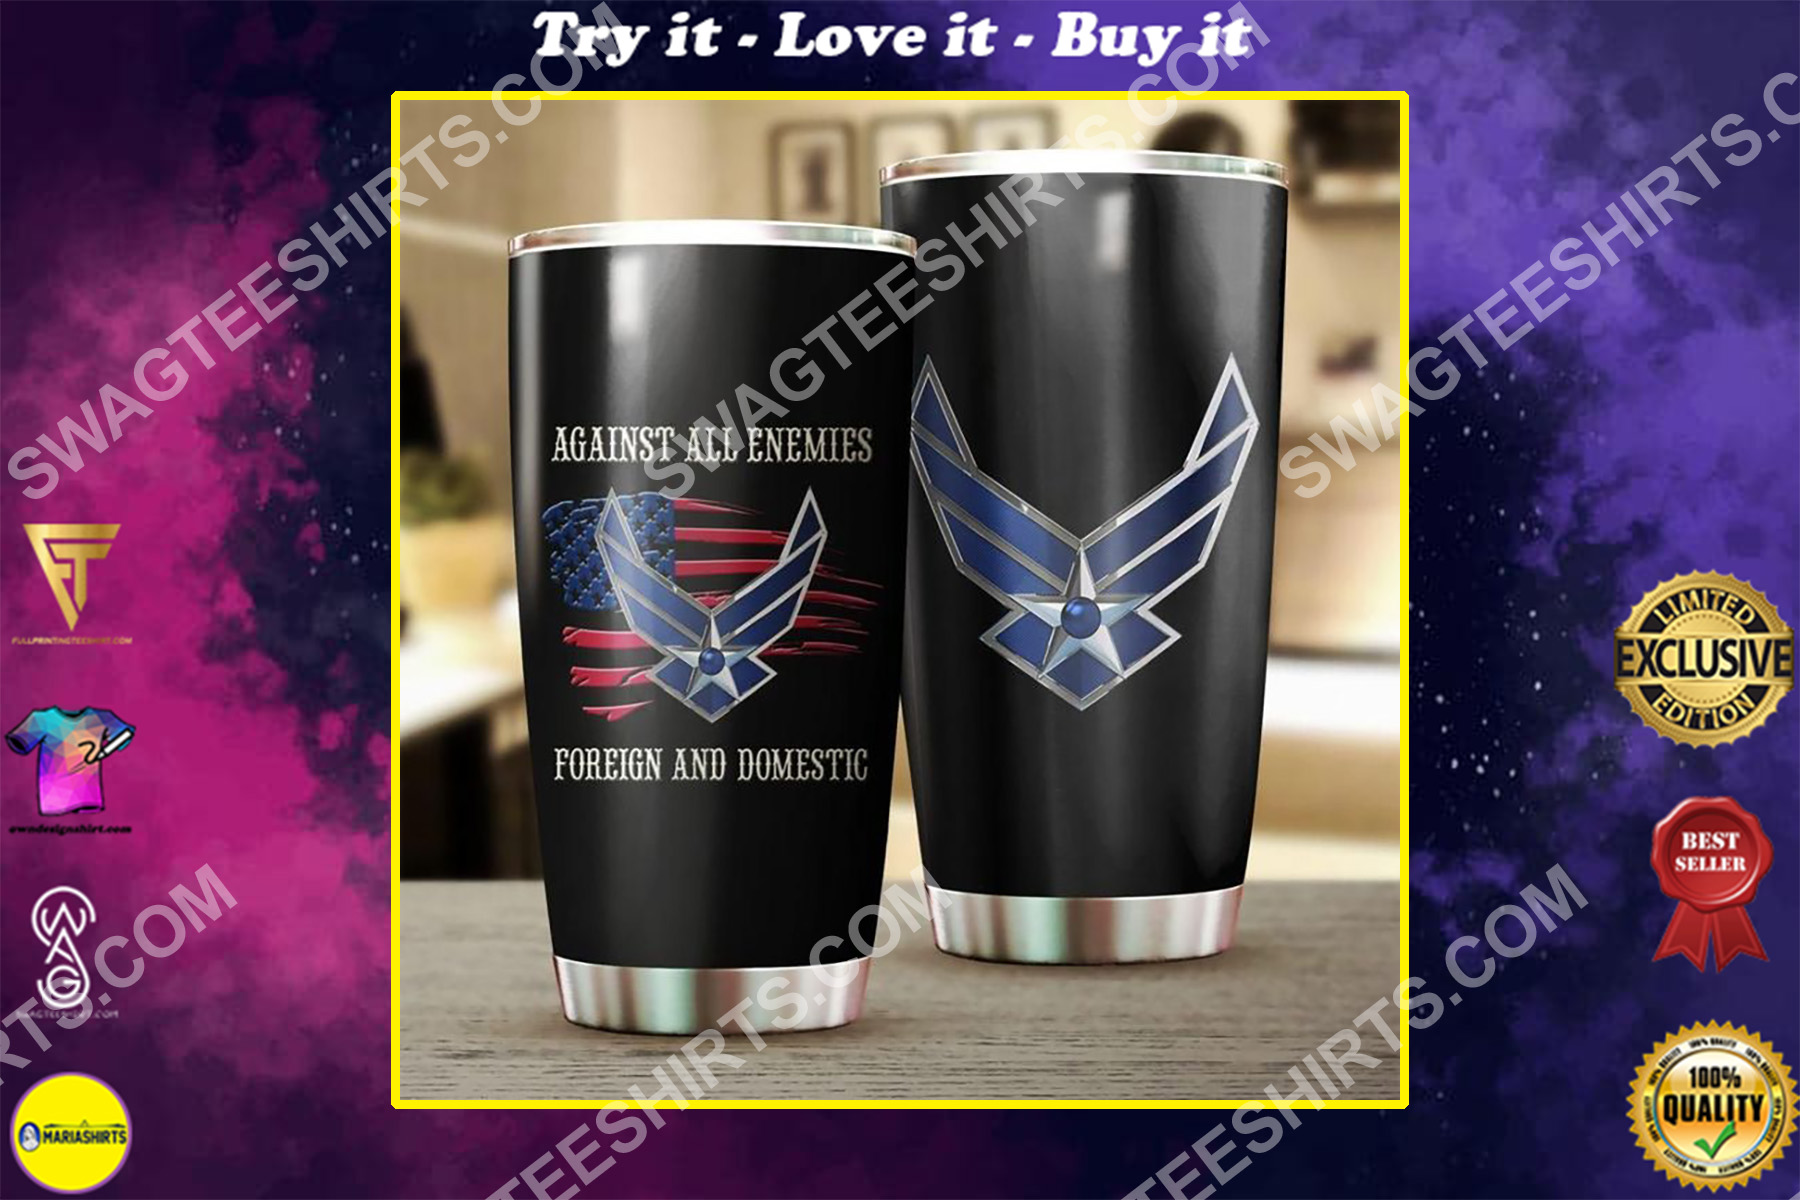 us air force against all enemies all over printed stainless steel tumbler